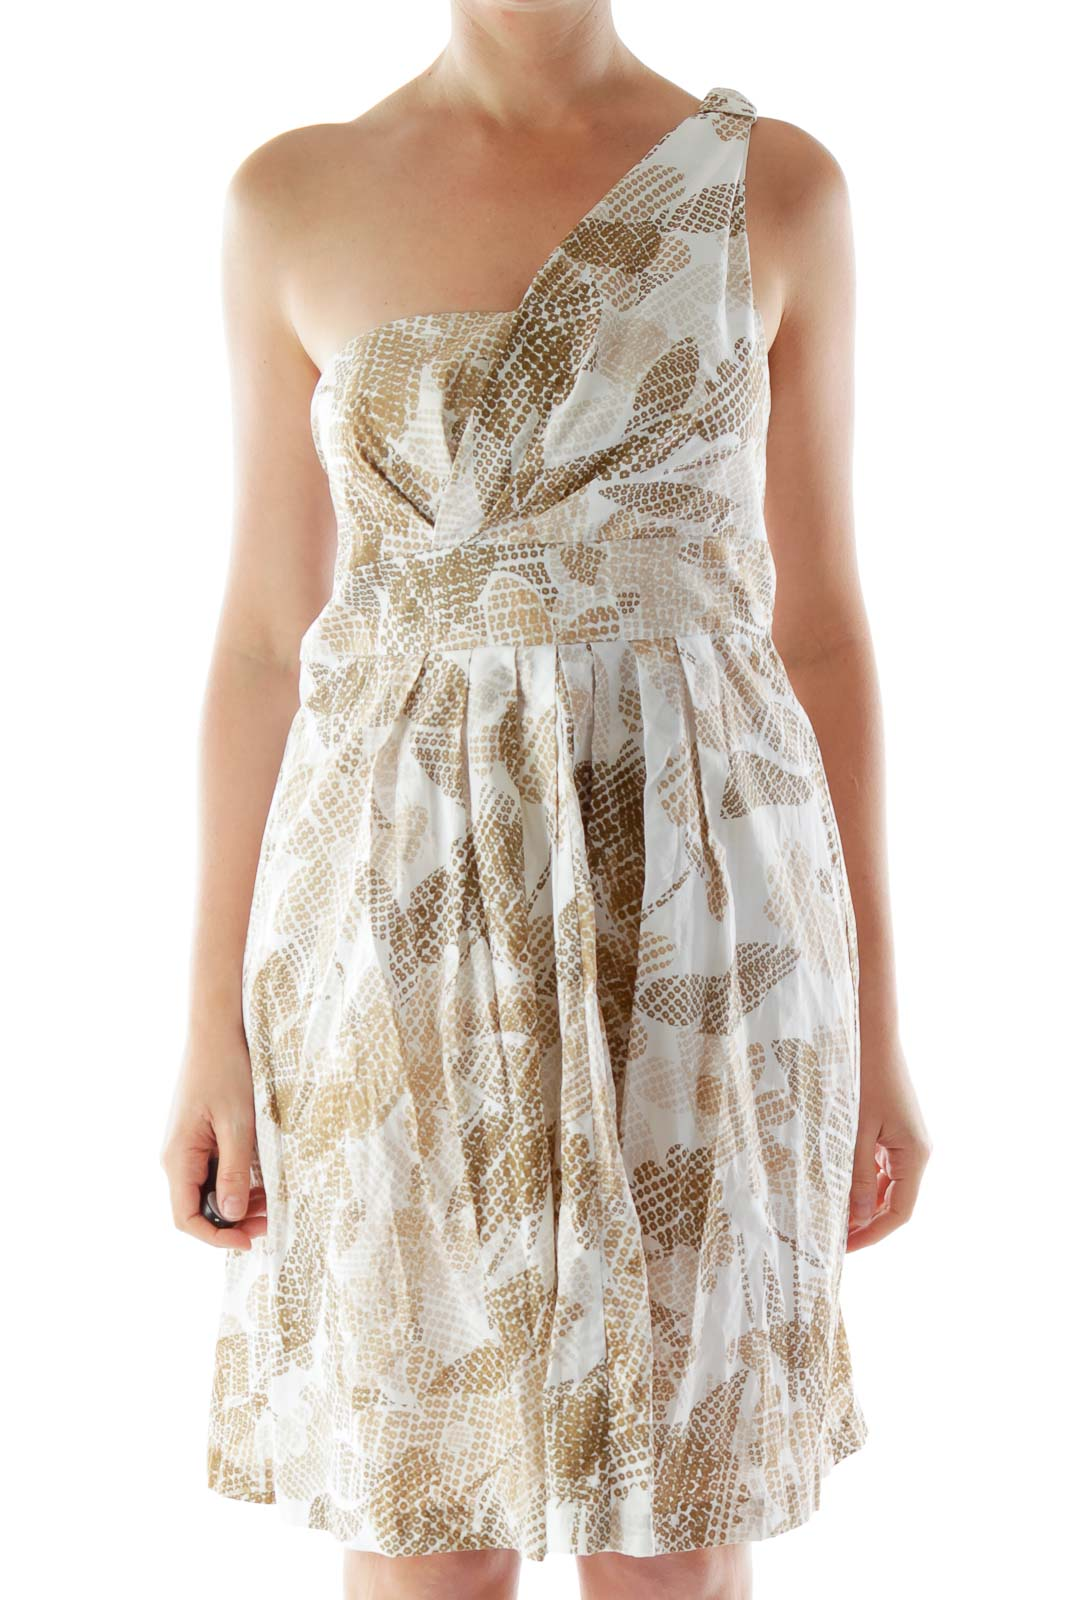 Brown Beige Cream One-Shoulder Flared Dress